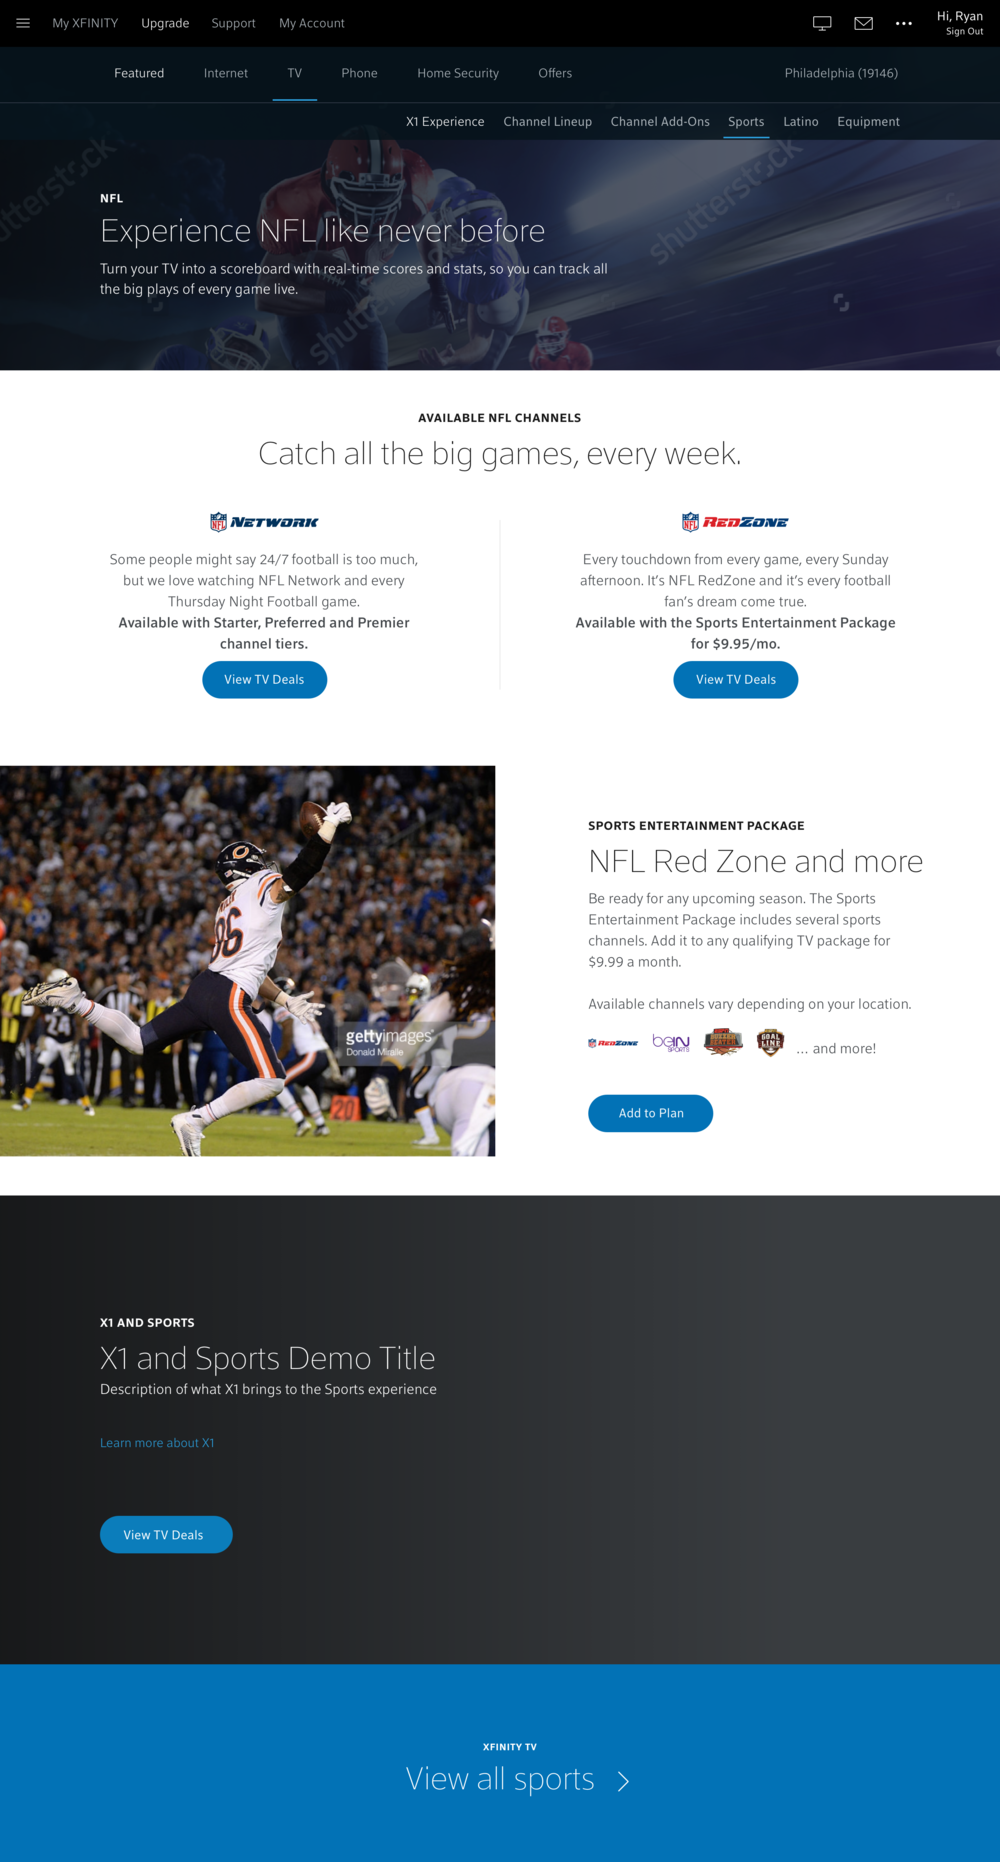 Wireframe - NFL page